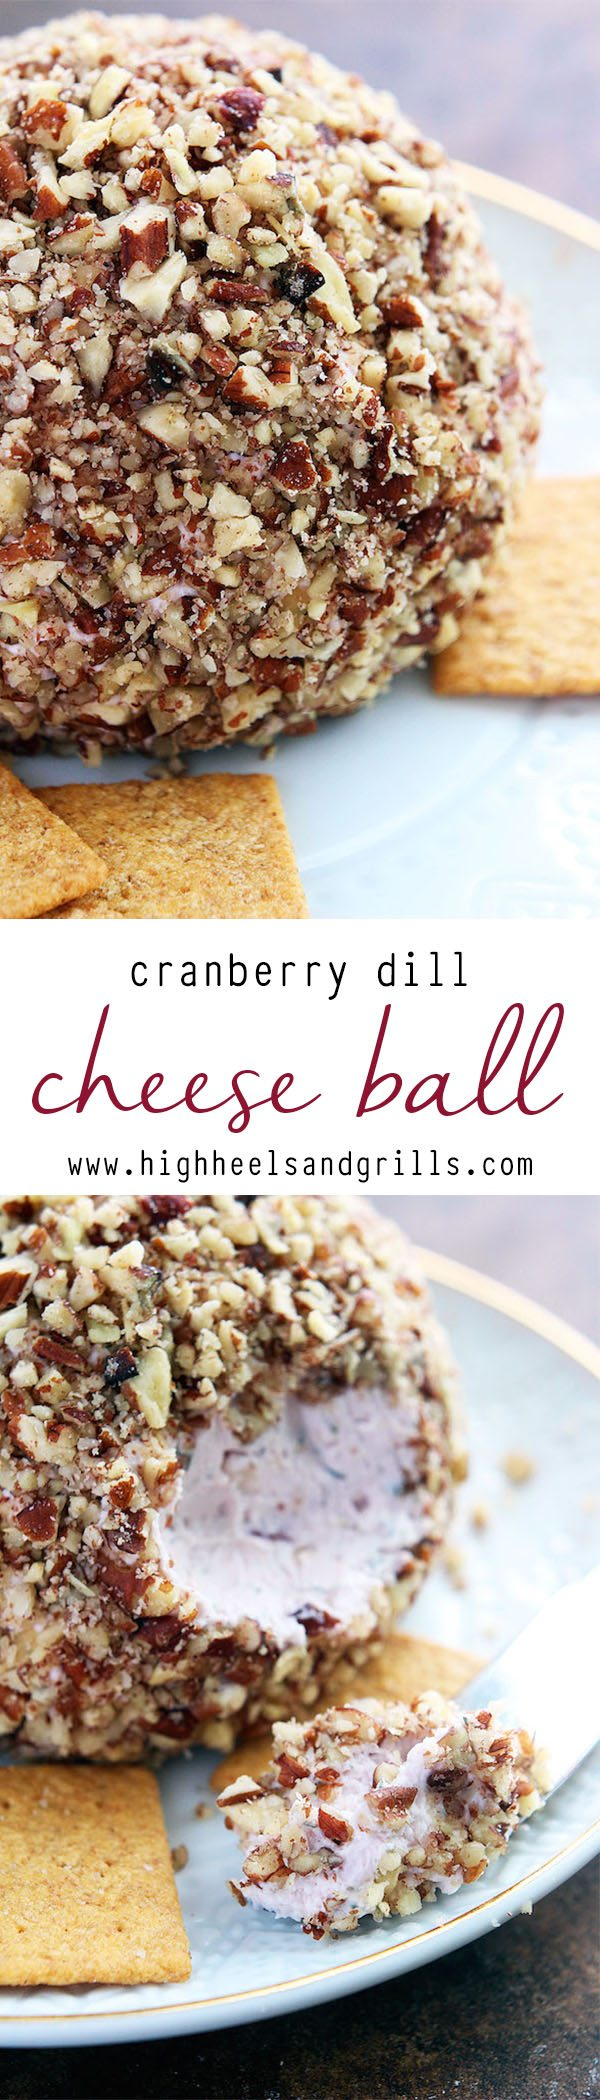 Cranberry Dill Cheese Ball - The perfect Thanksgiving or Christmas appetizer!